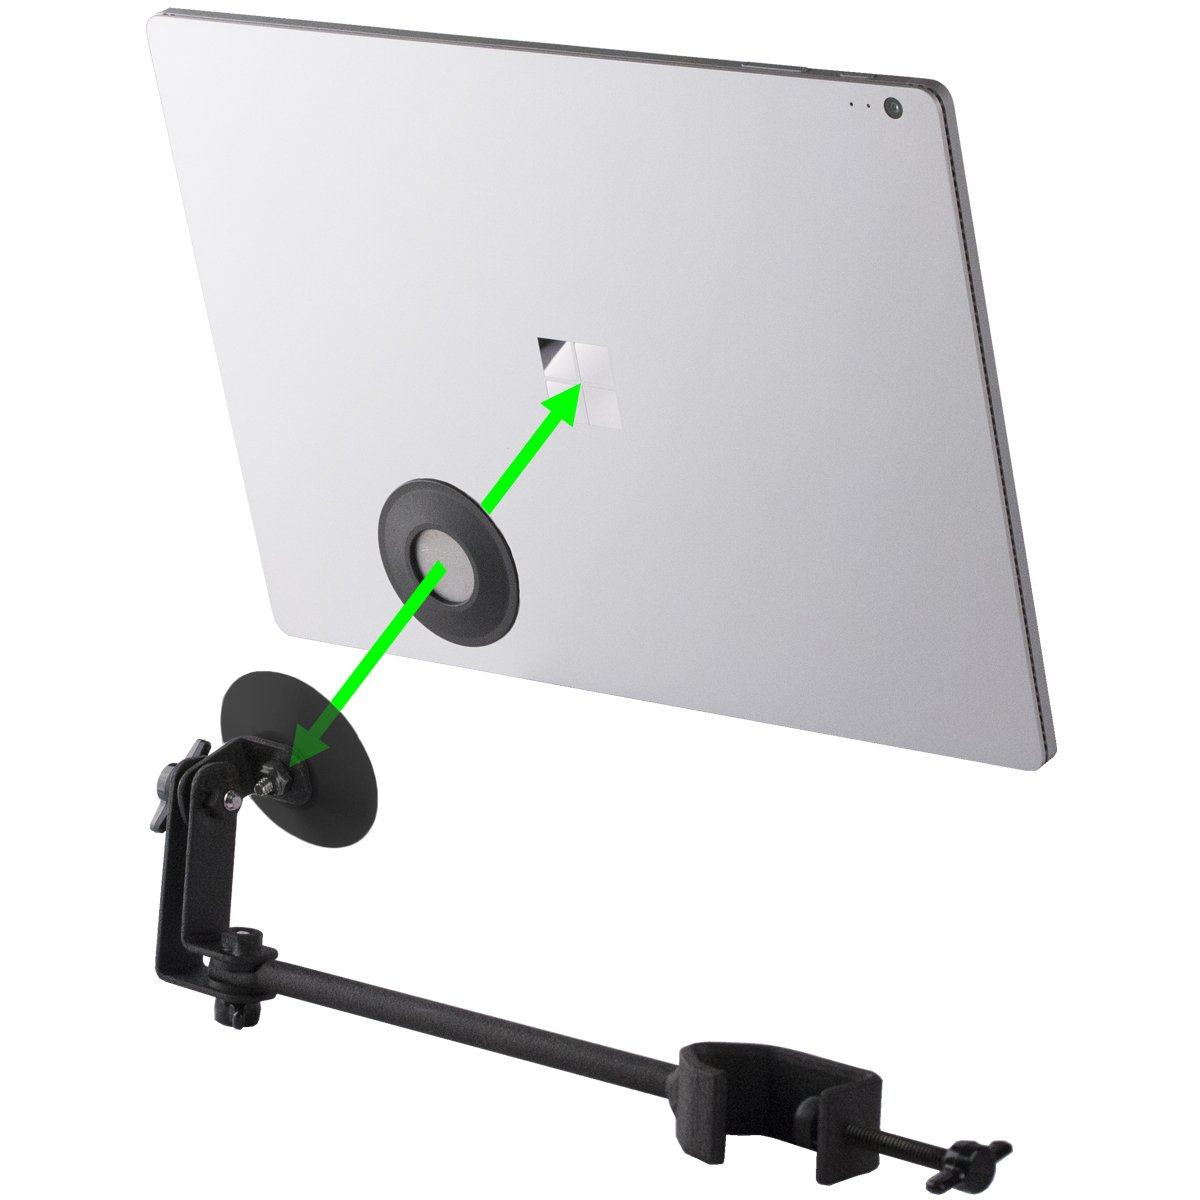 Mic / Music Stand Magnetic Tablet Holder (MSTH)